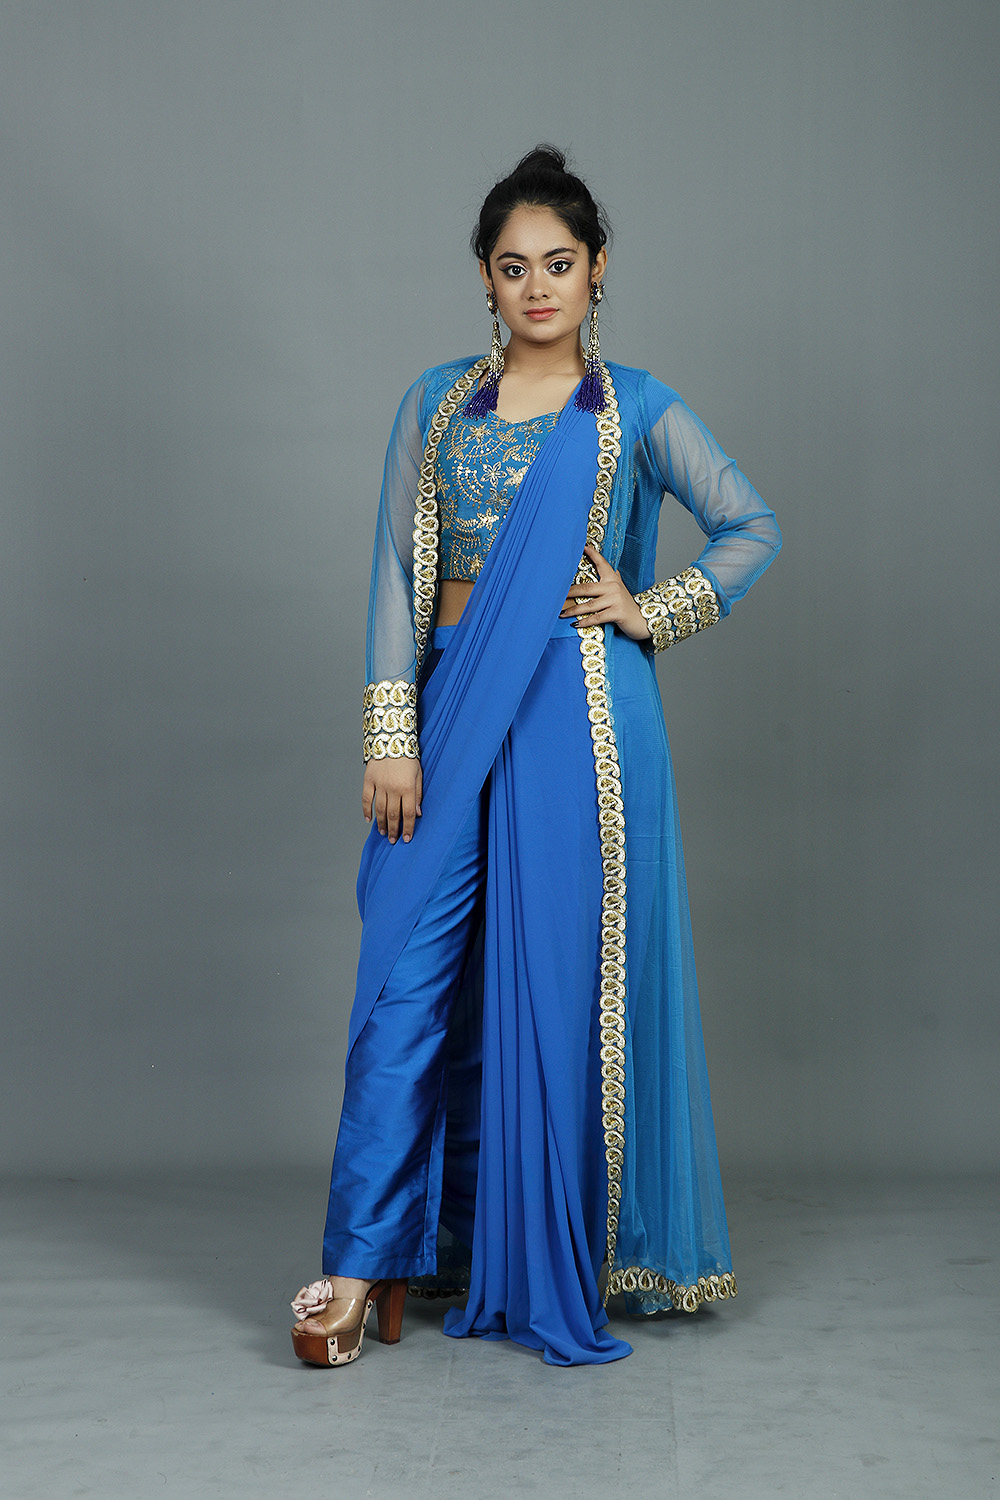 Royal Blue Draped Sari With Stitched Blouse And Shrug